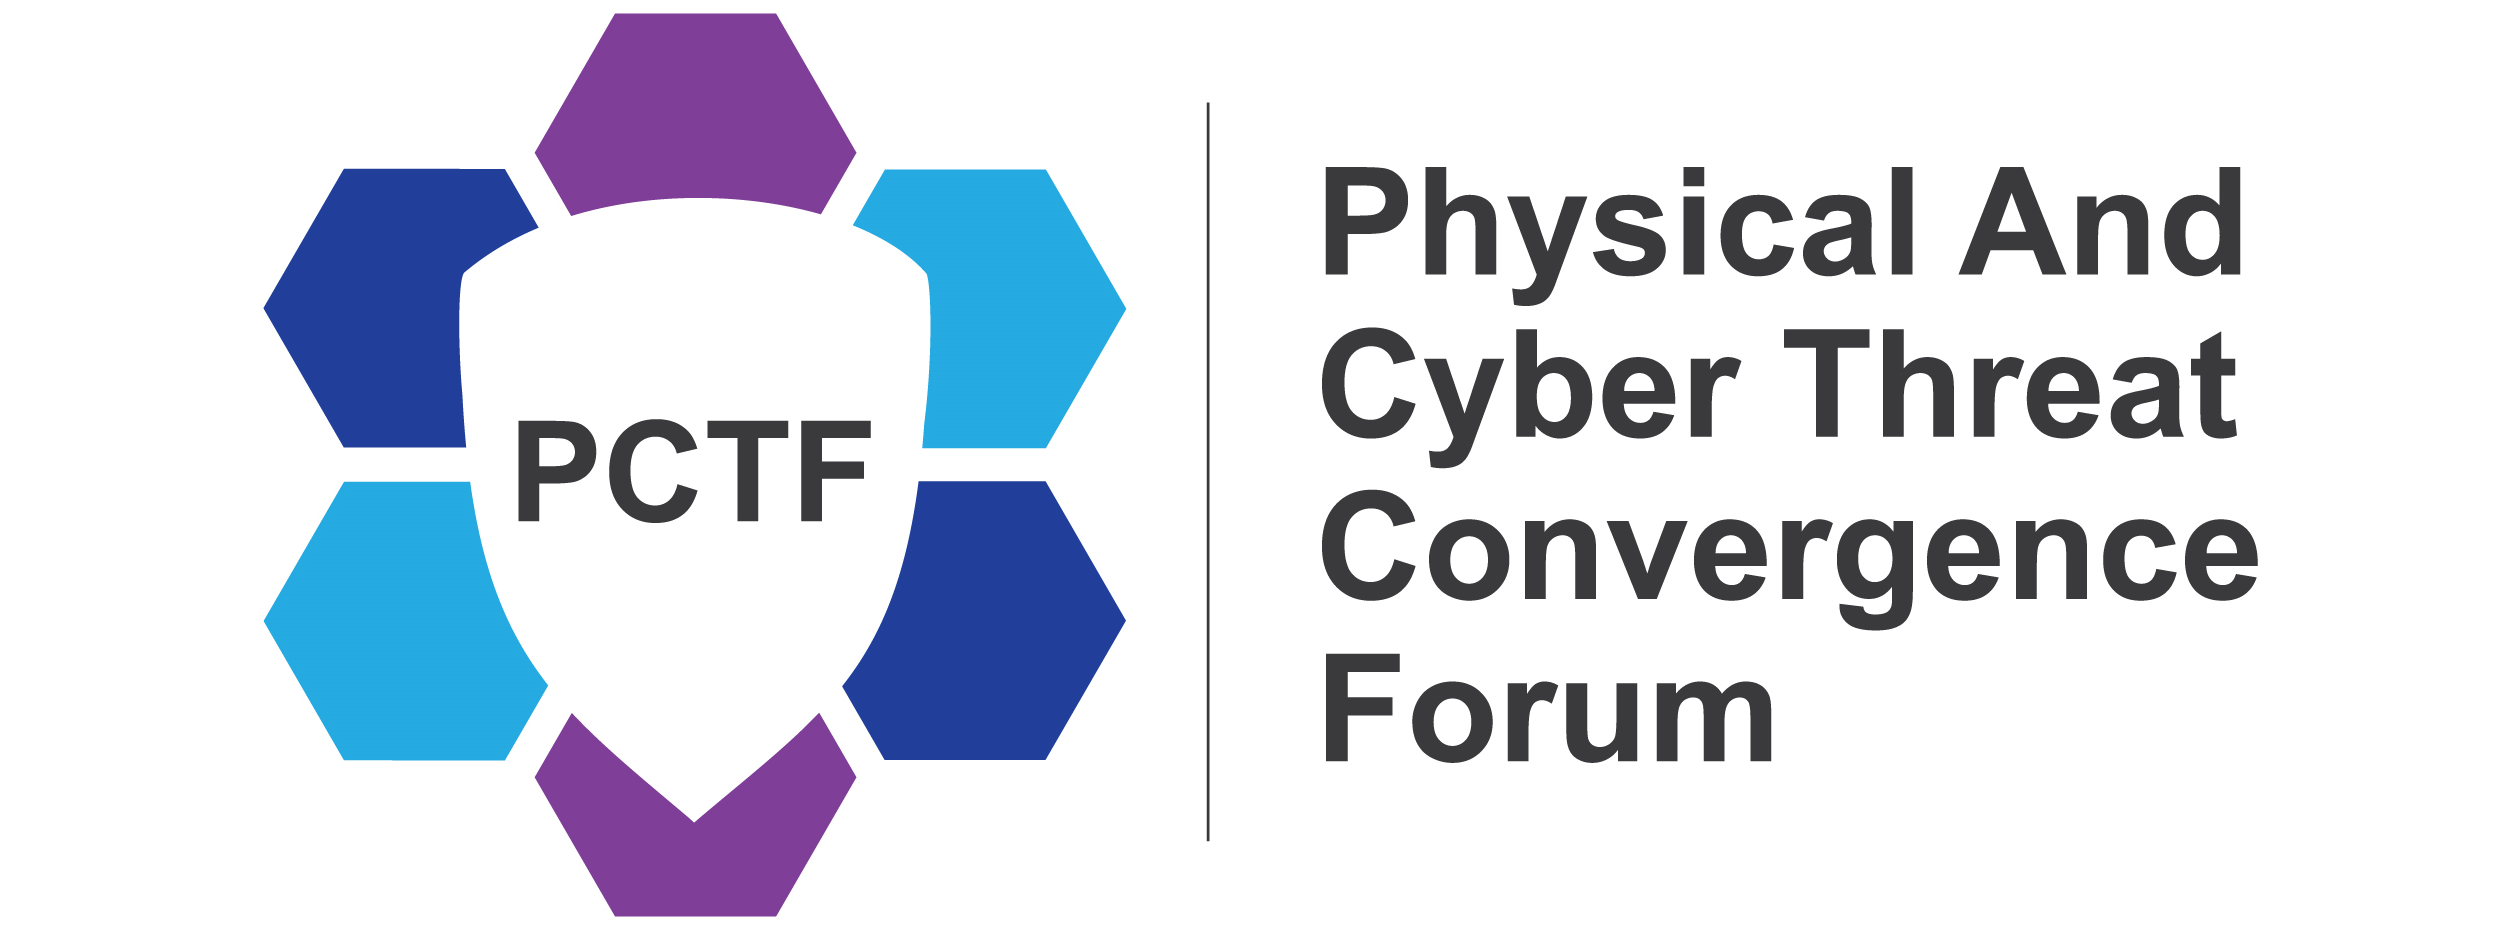 Physical Cyber Convergence Forum Phoenix